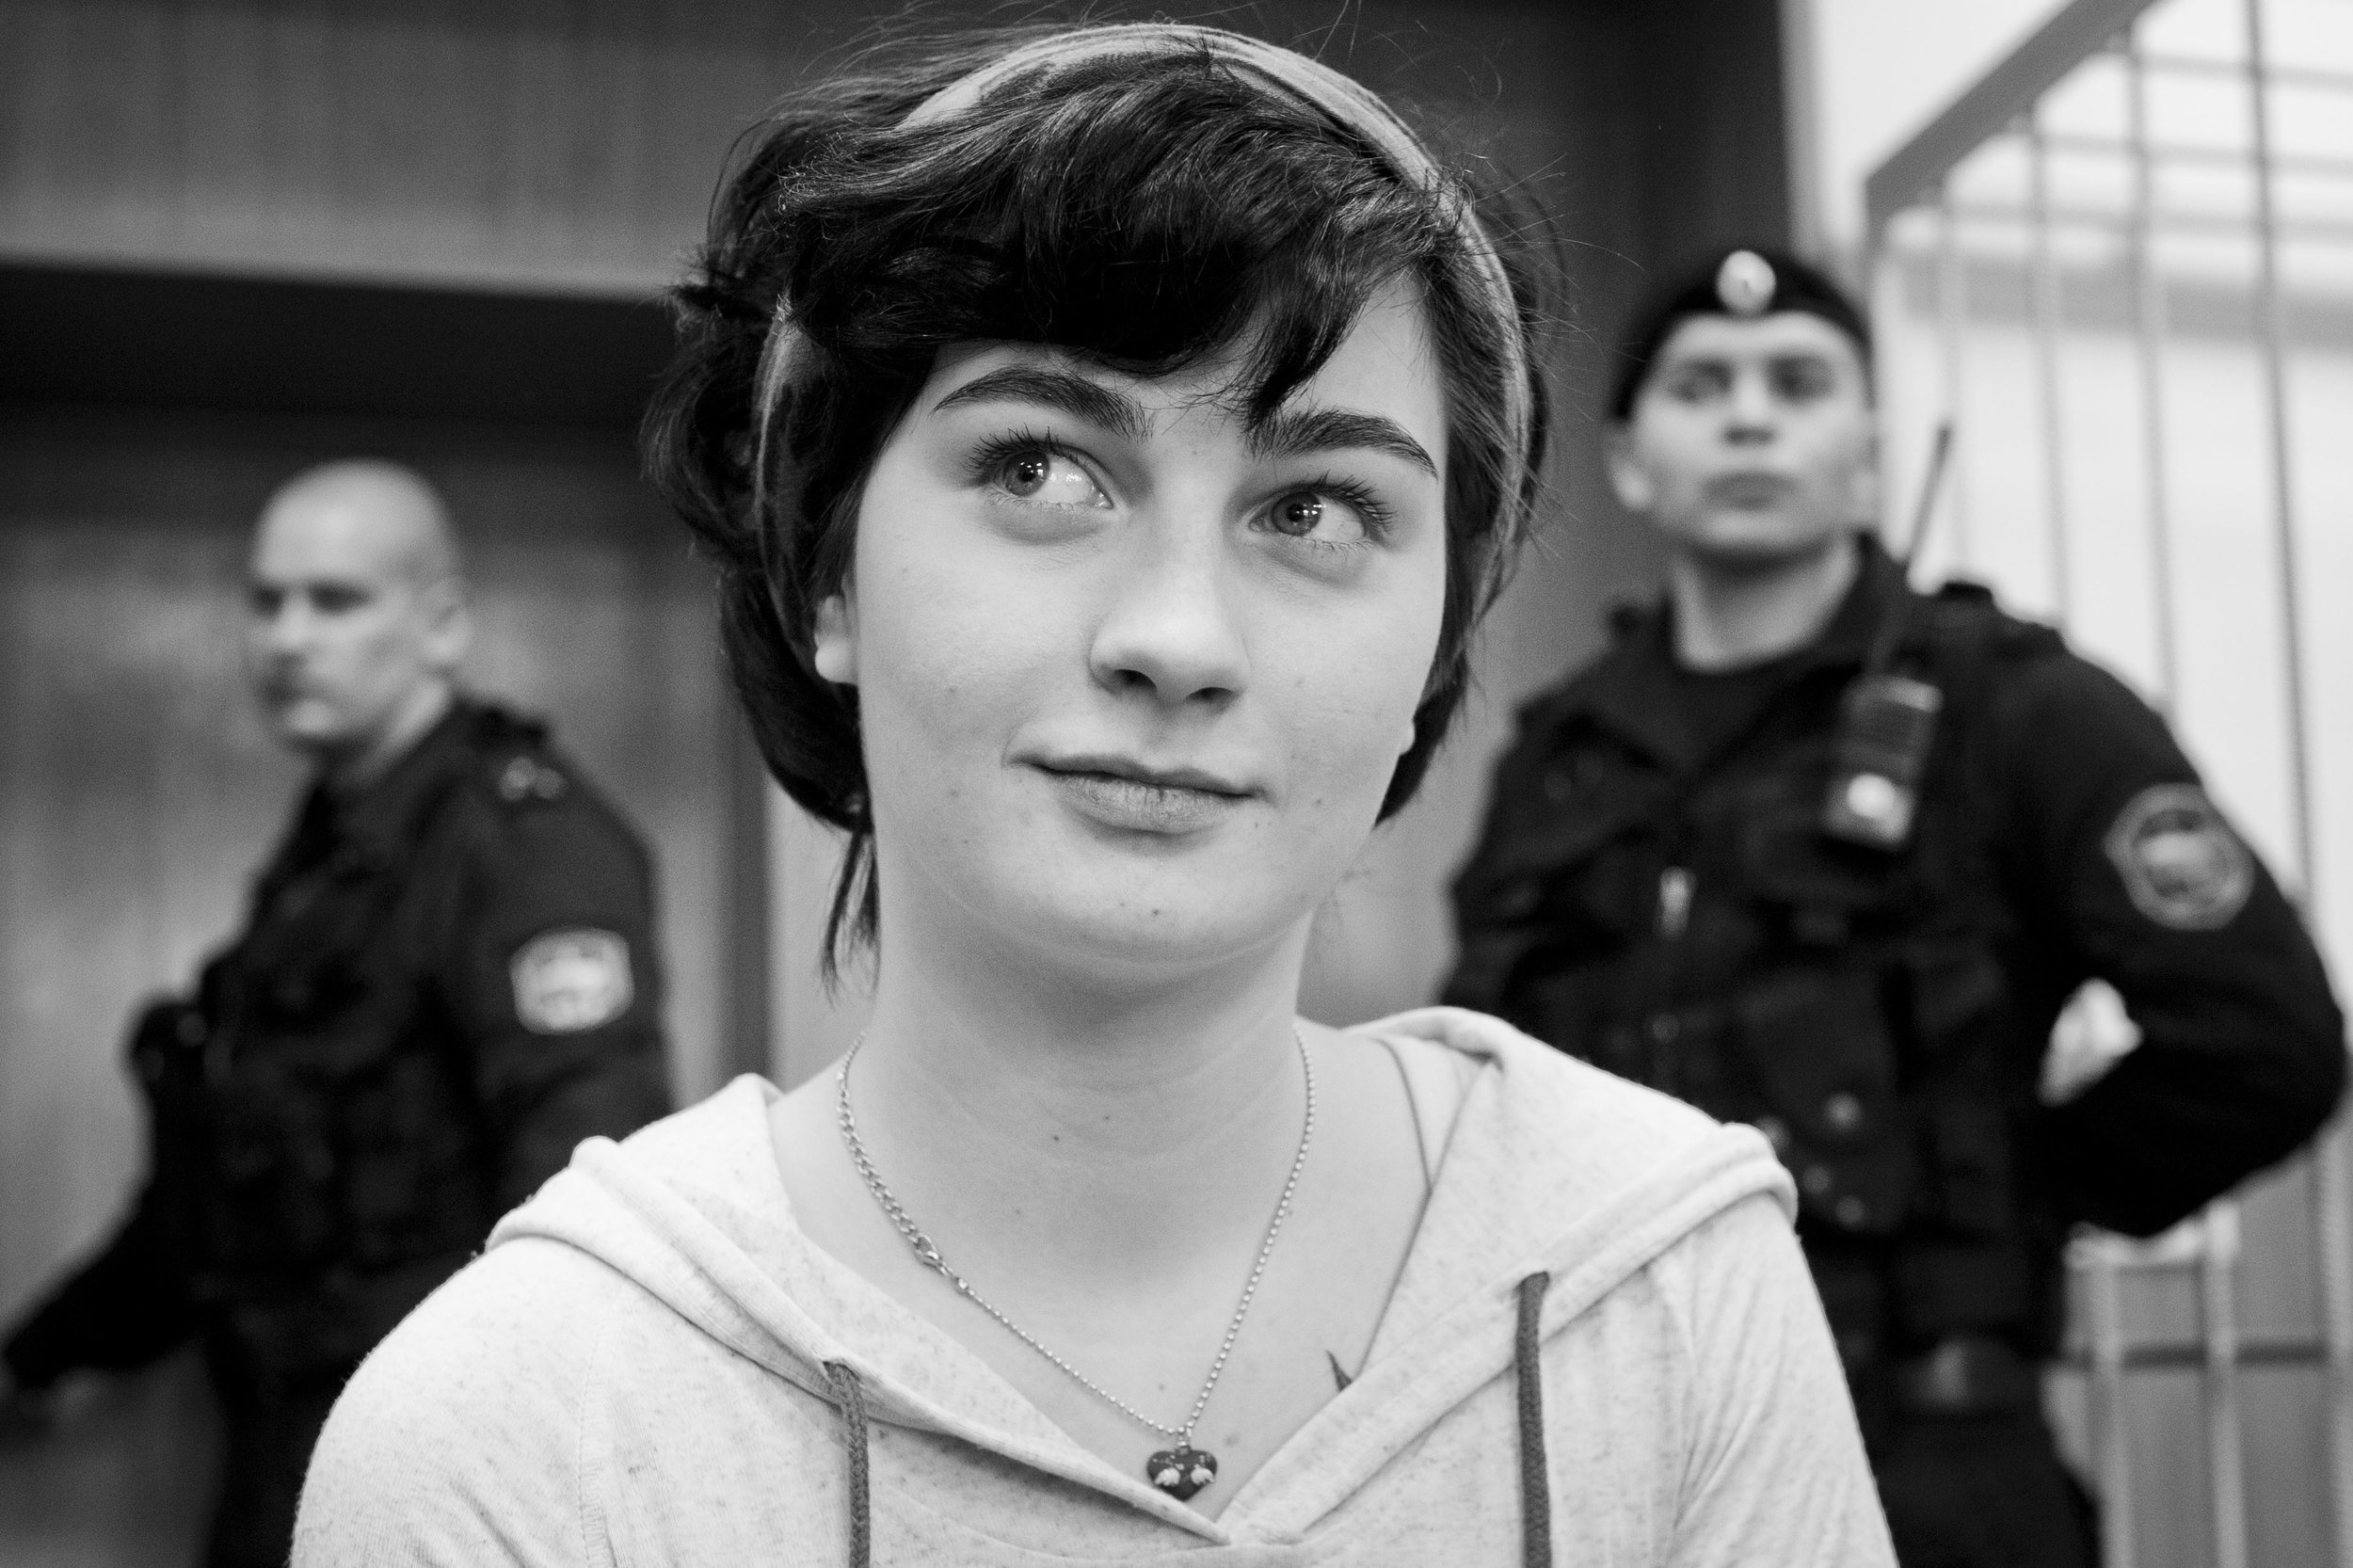 Alexandra Duhanina's house arrest is being extended. She was given a suspended sentence of 3 years and 3 months. March 5, 2013